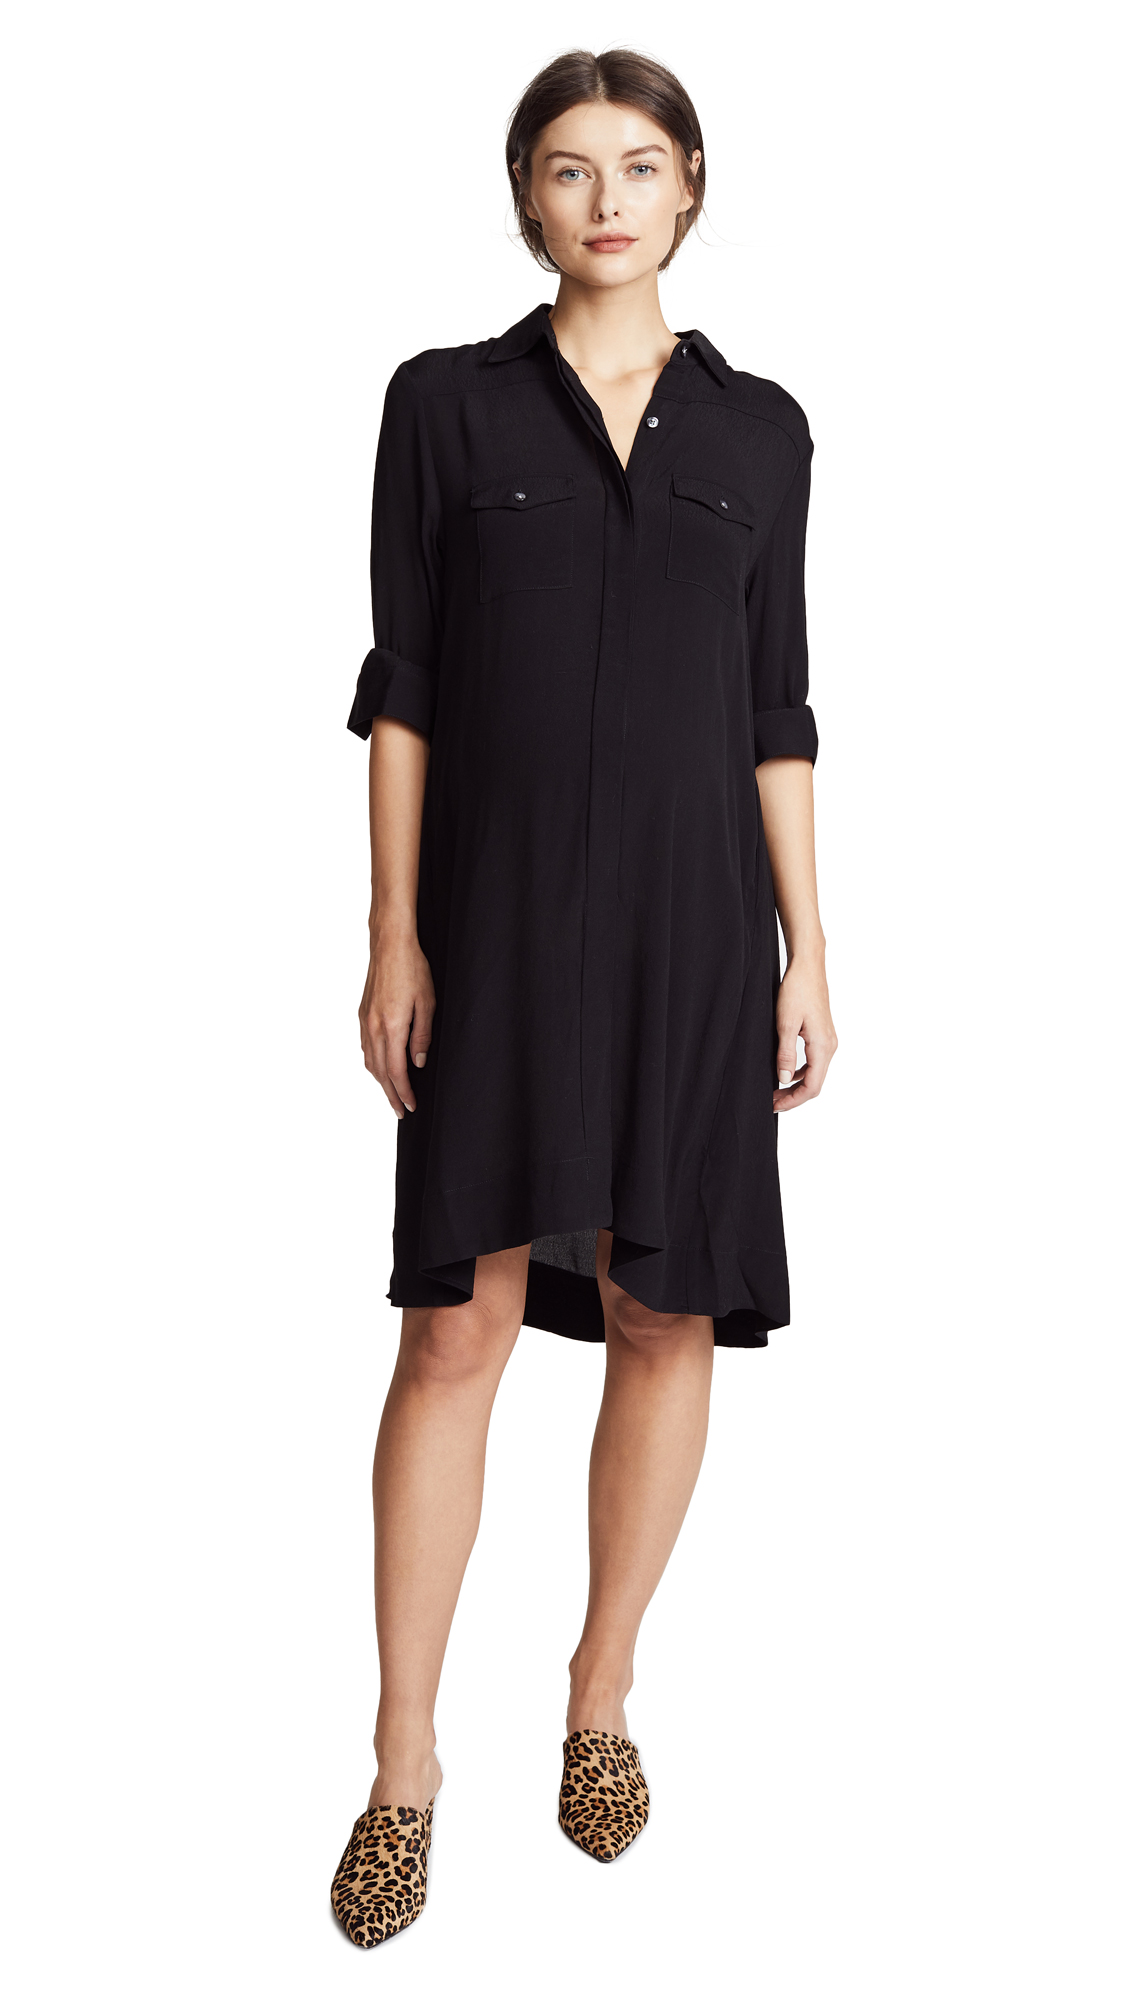 HATCH The Shirtdress In Black